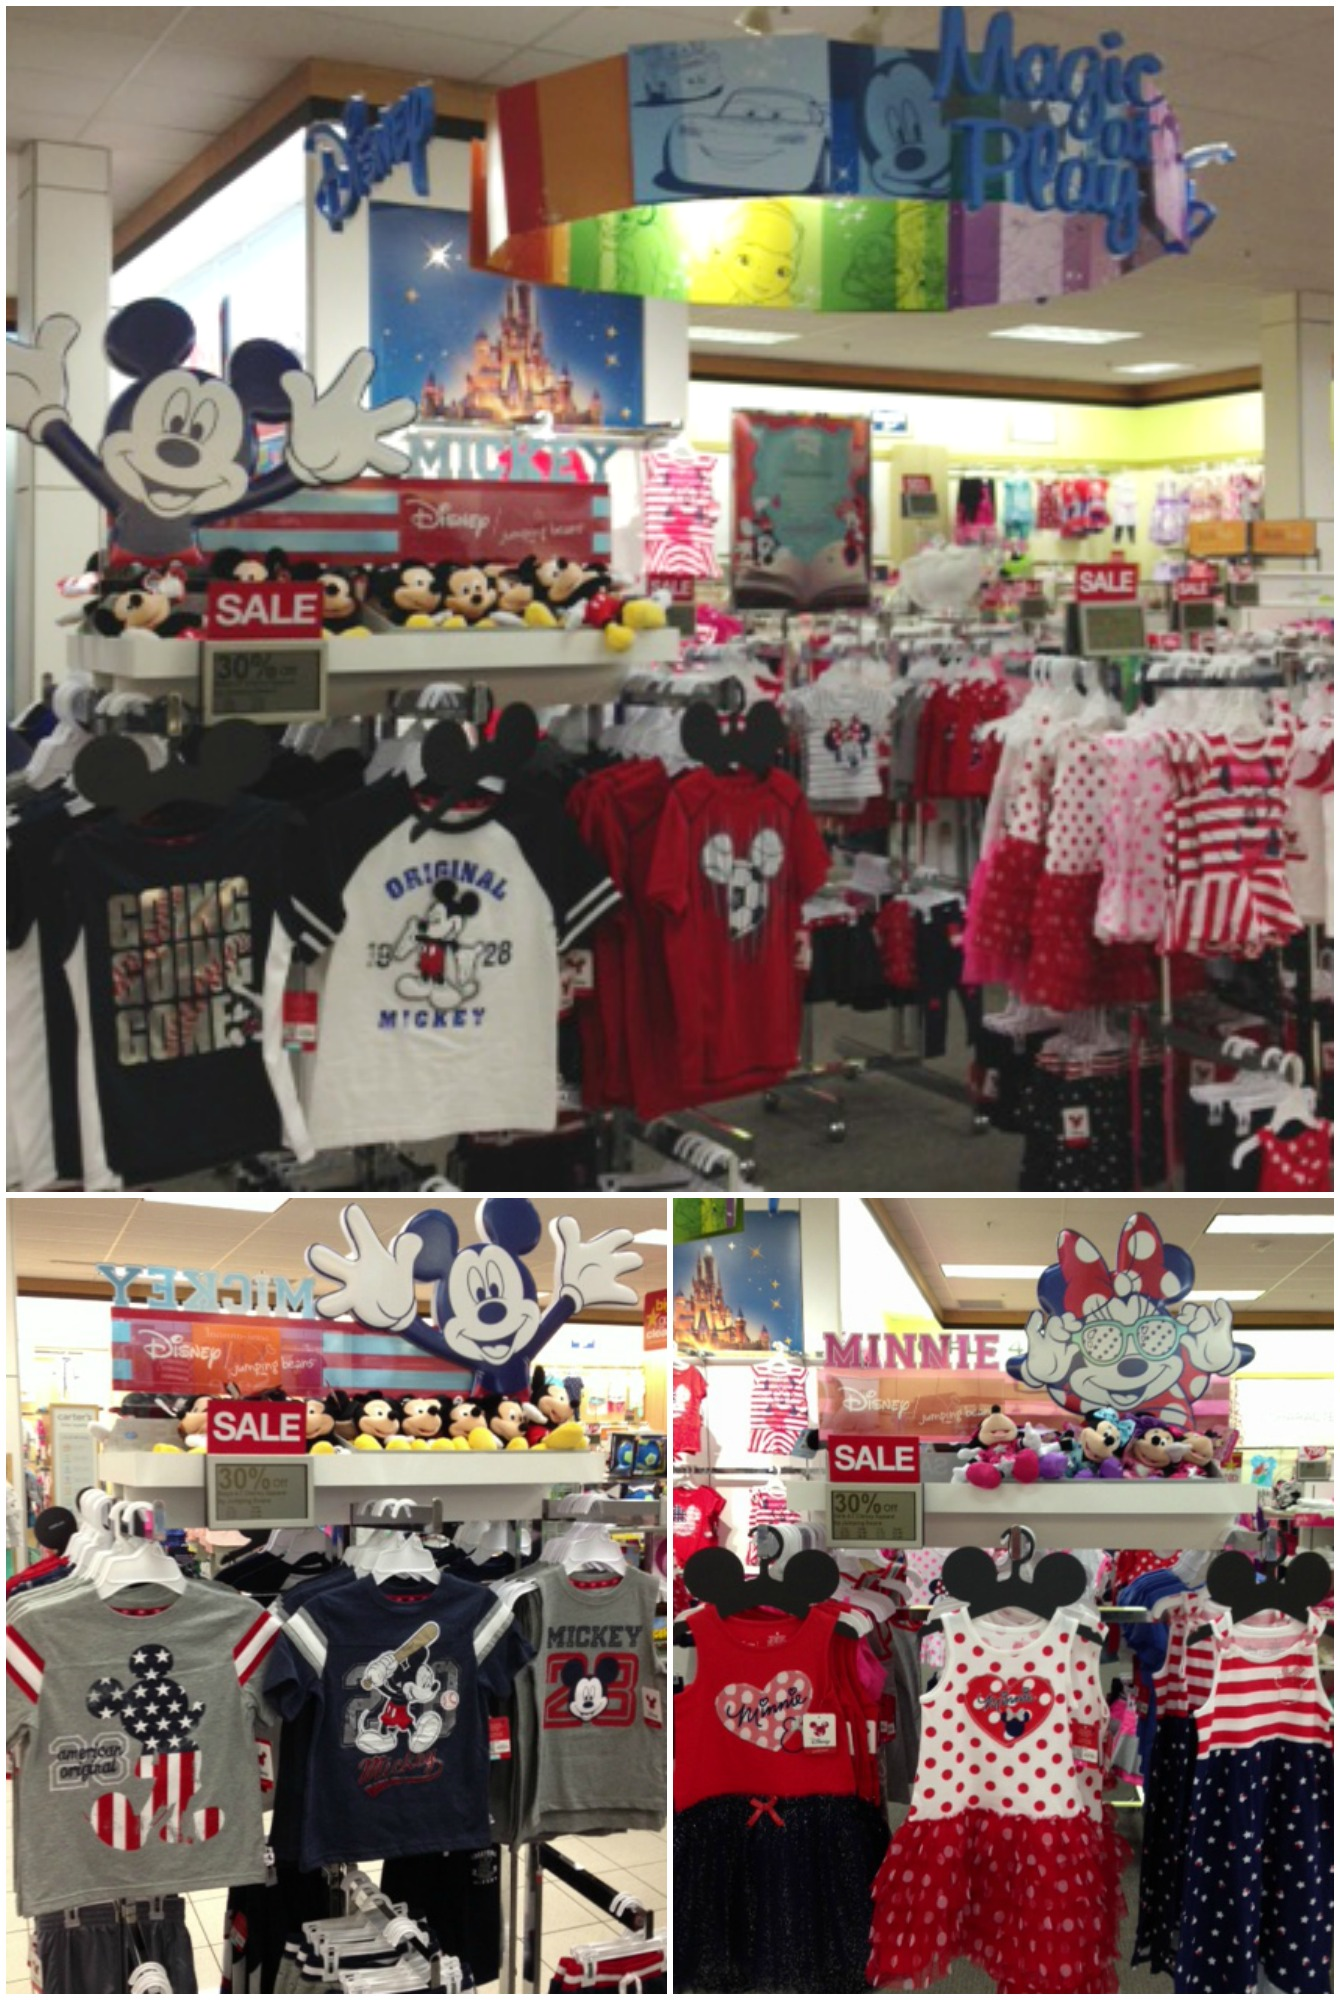 Disney Clothes at Kohl's #MagicAtPlay